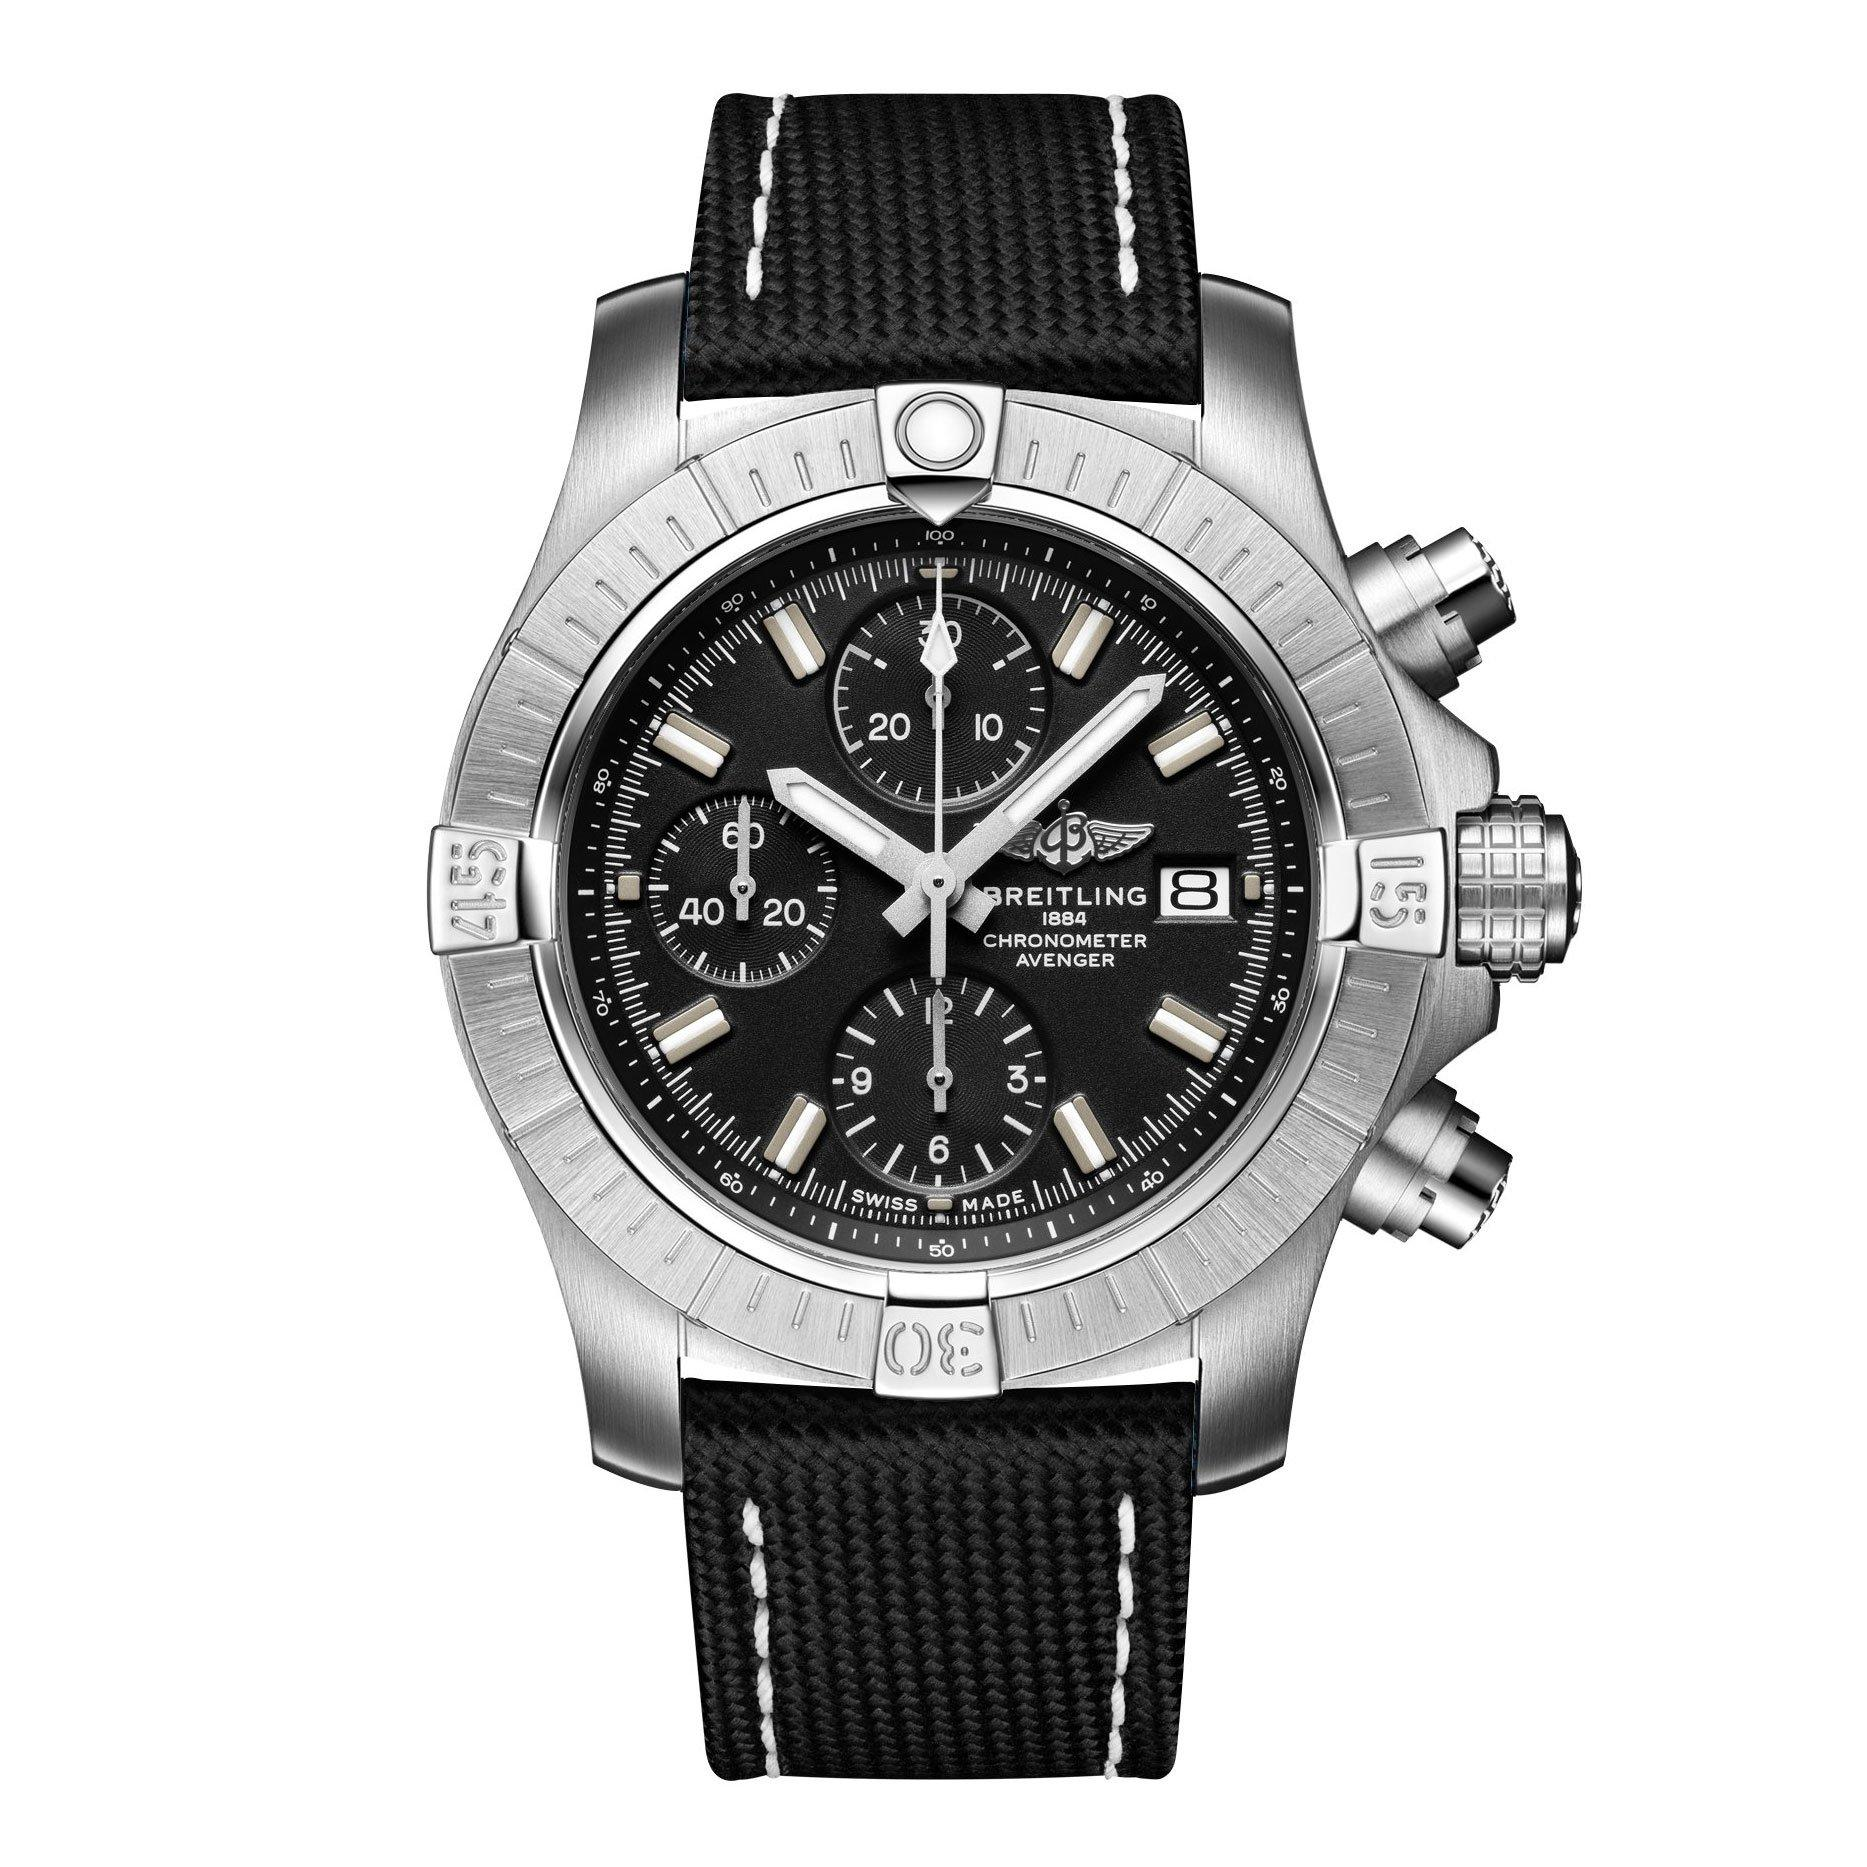 Breitling Avenger Chronograph 43 Automatic Men's Watch